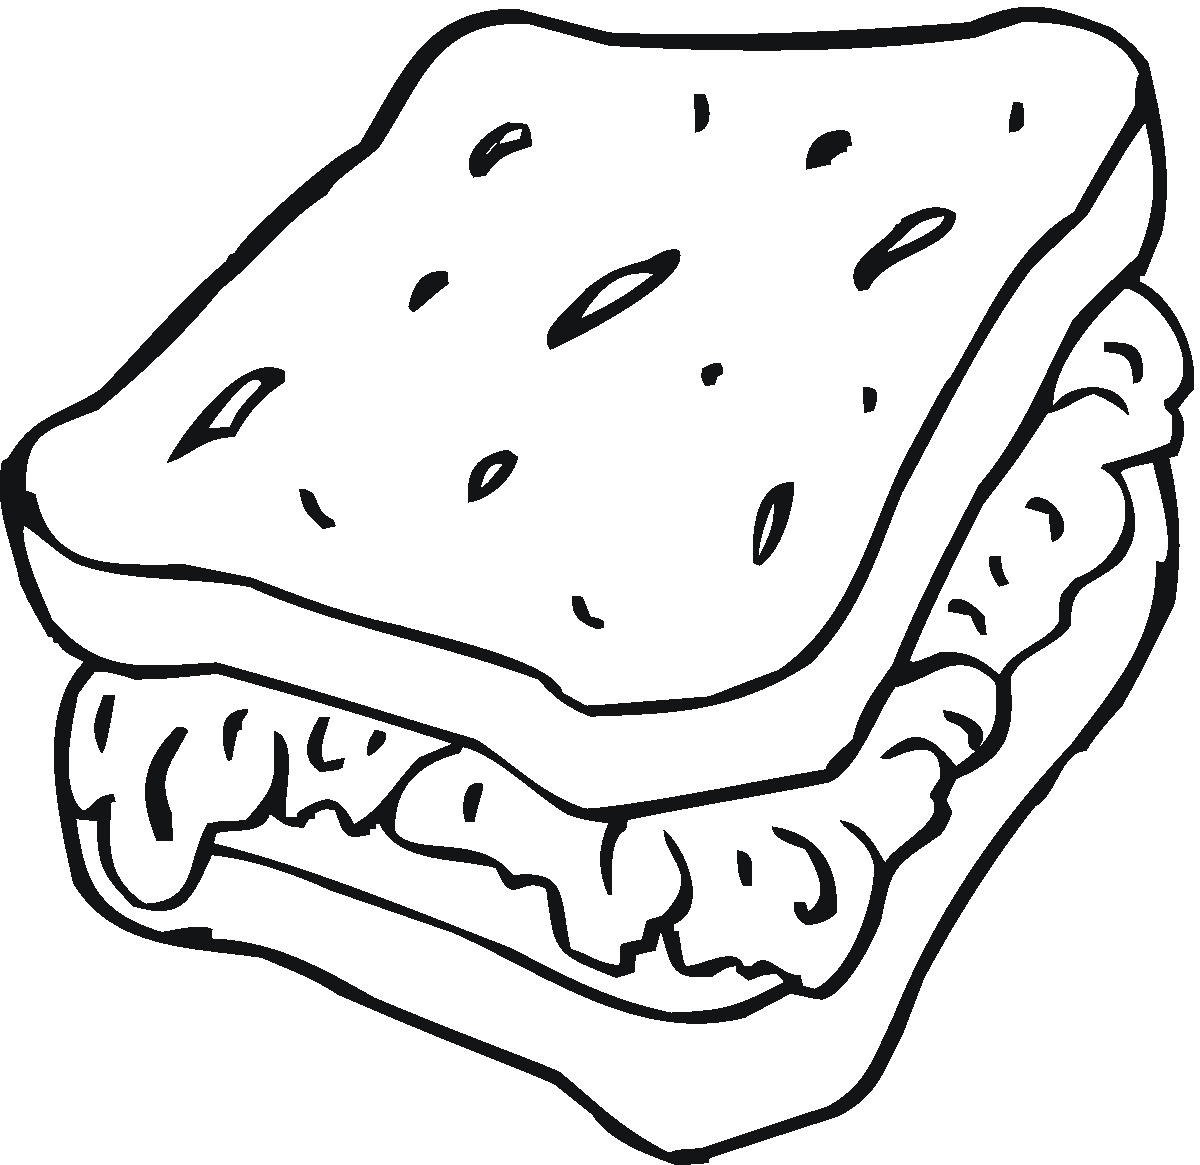 1200x1165 Tremendous Slice Of Bread Coloring Page Drawin